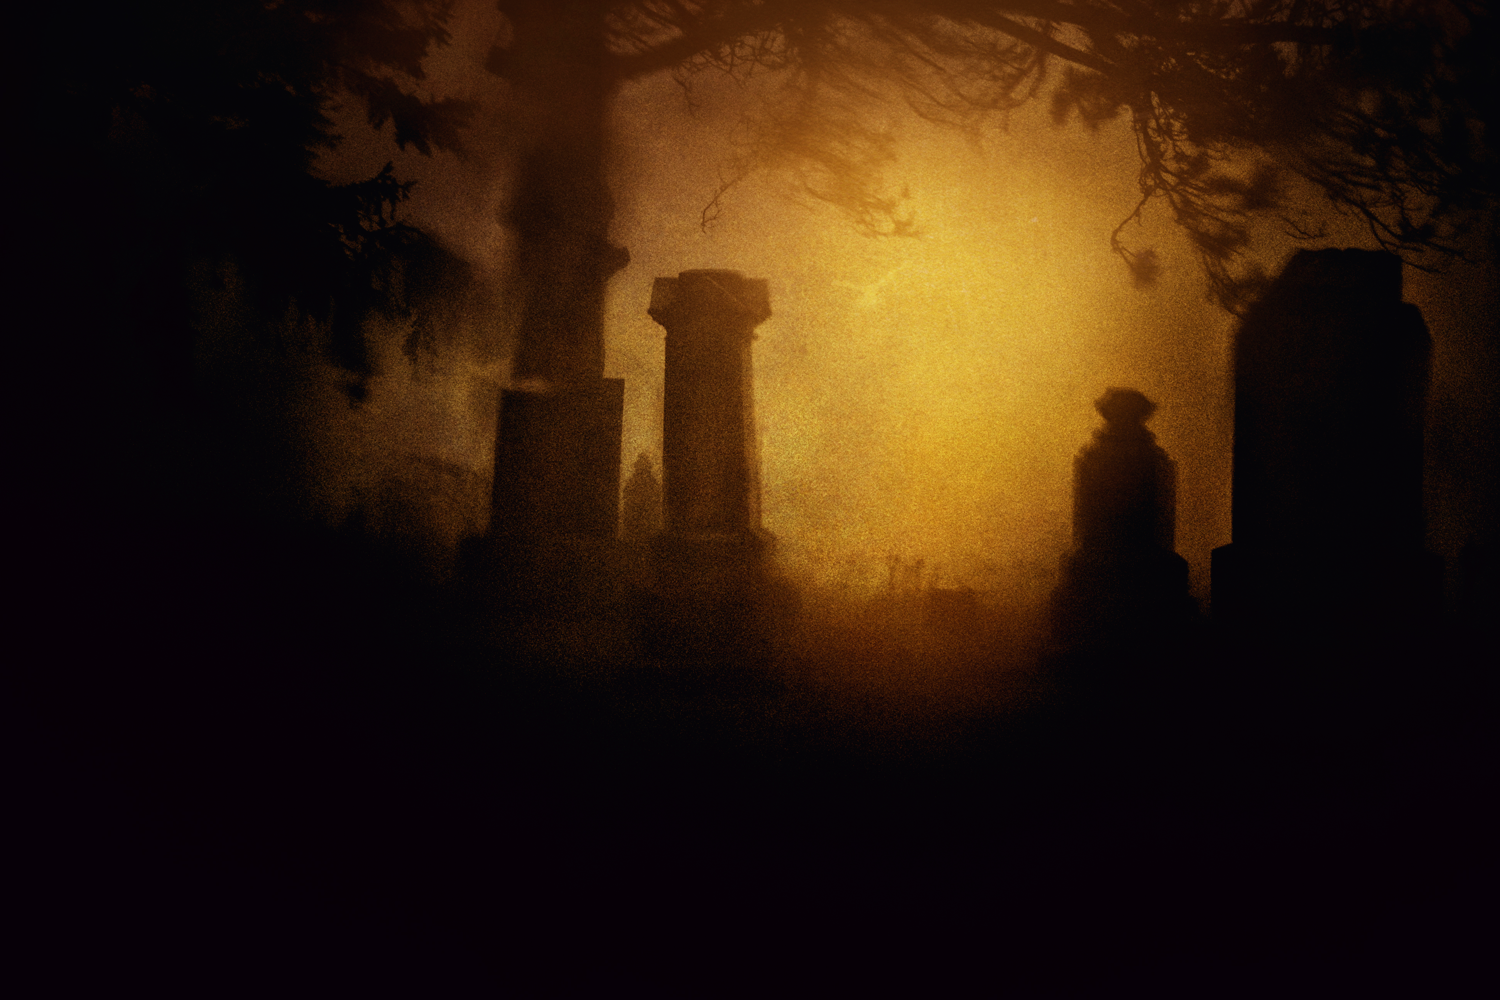 Grave Intentions  via  Photopin   (cc)